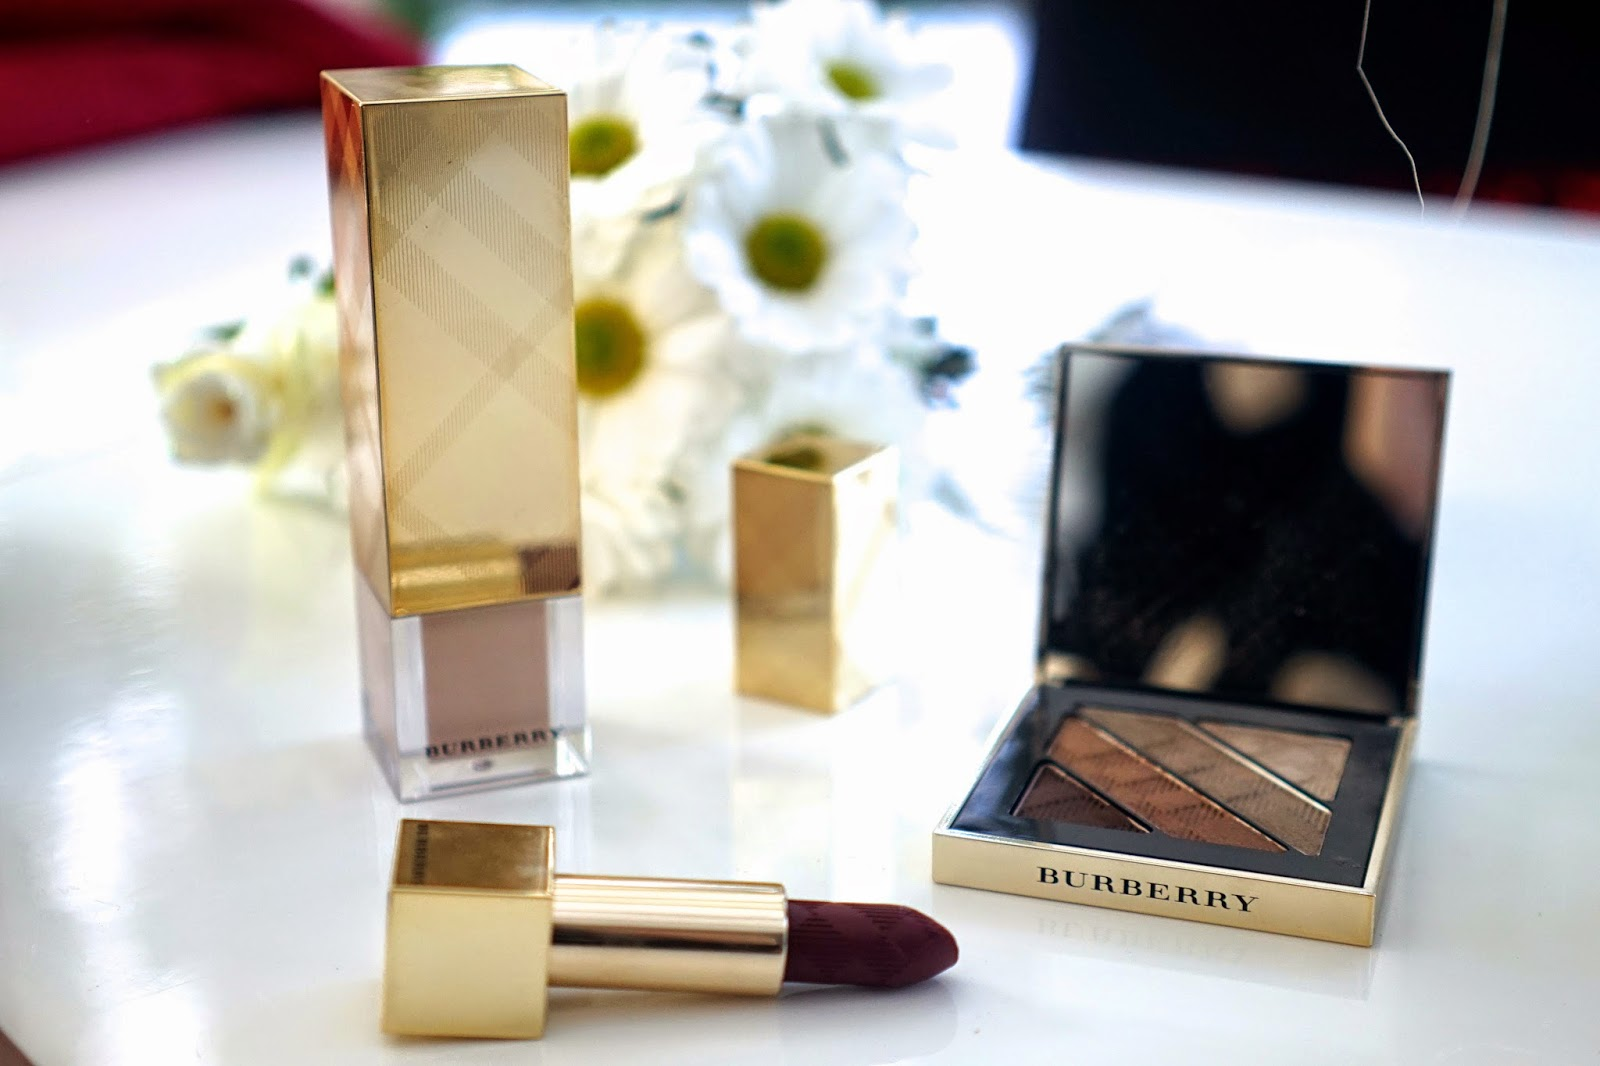 burberry make up collection